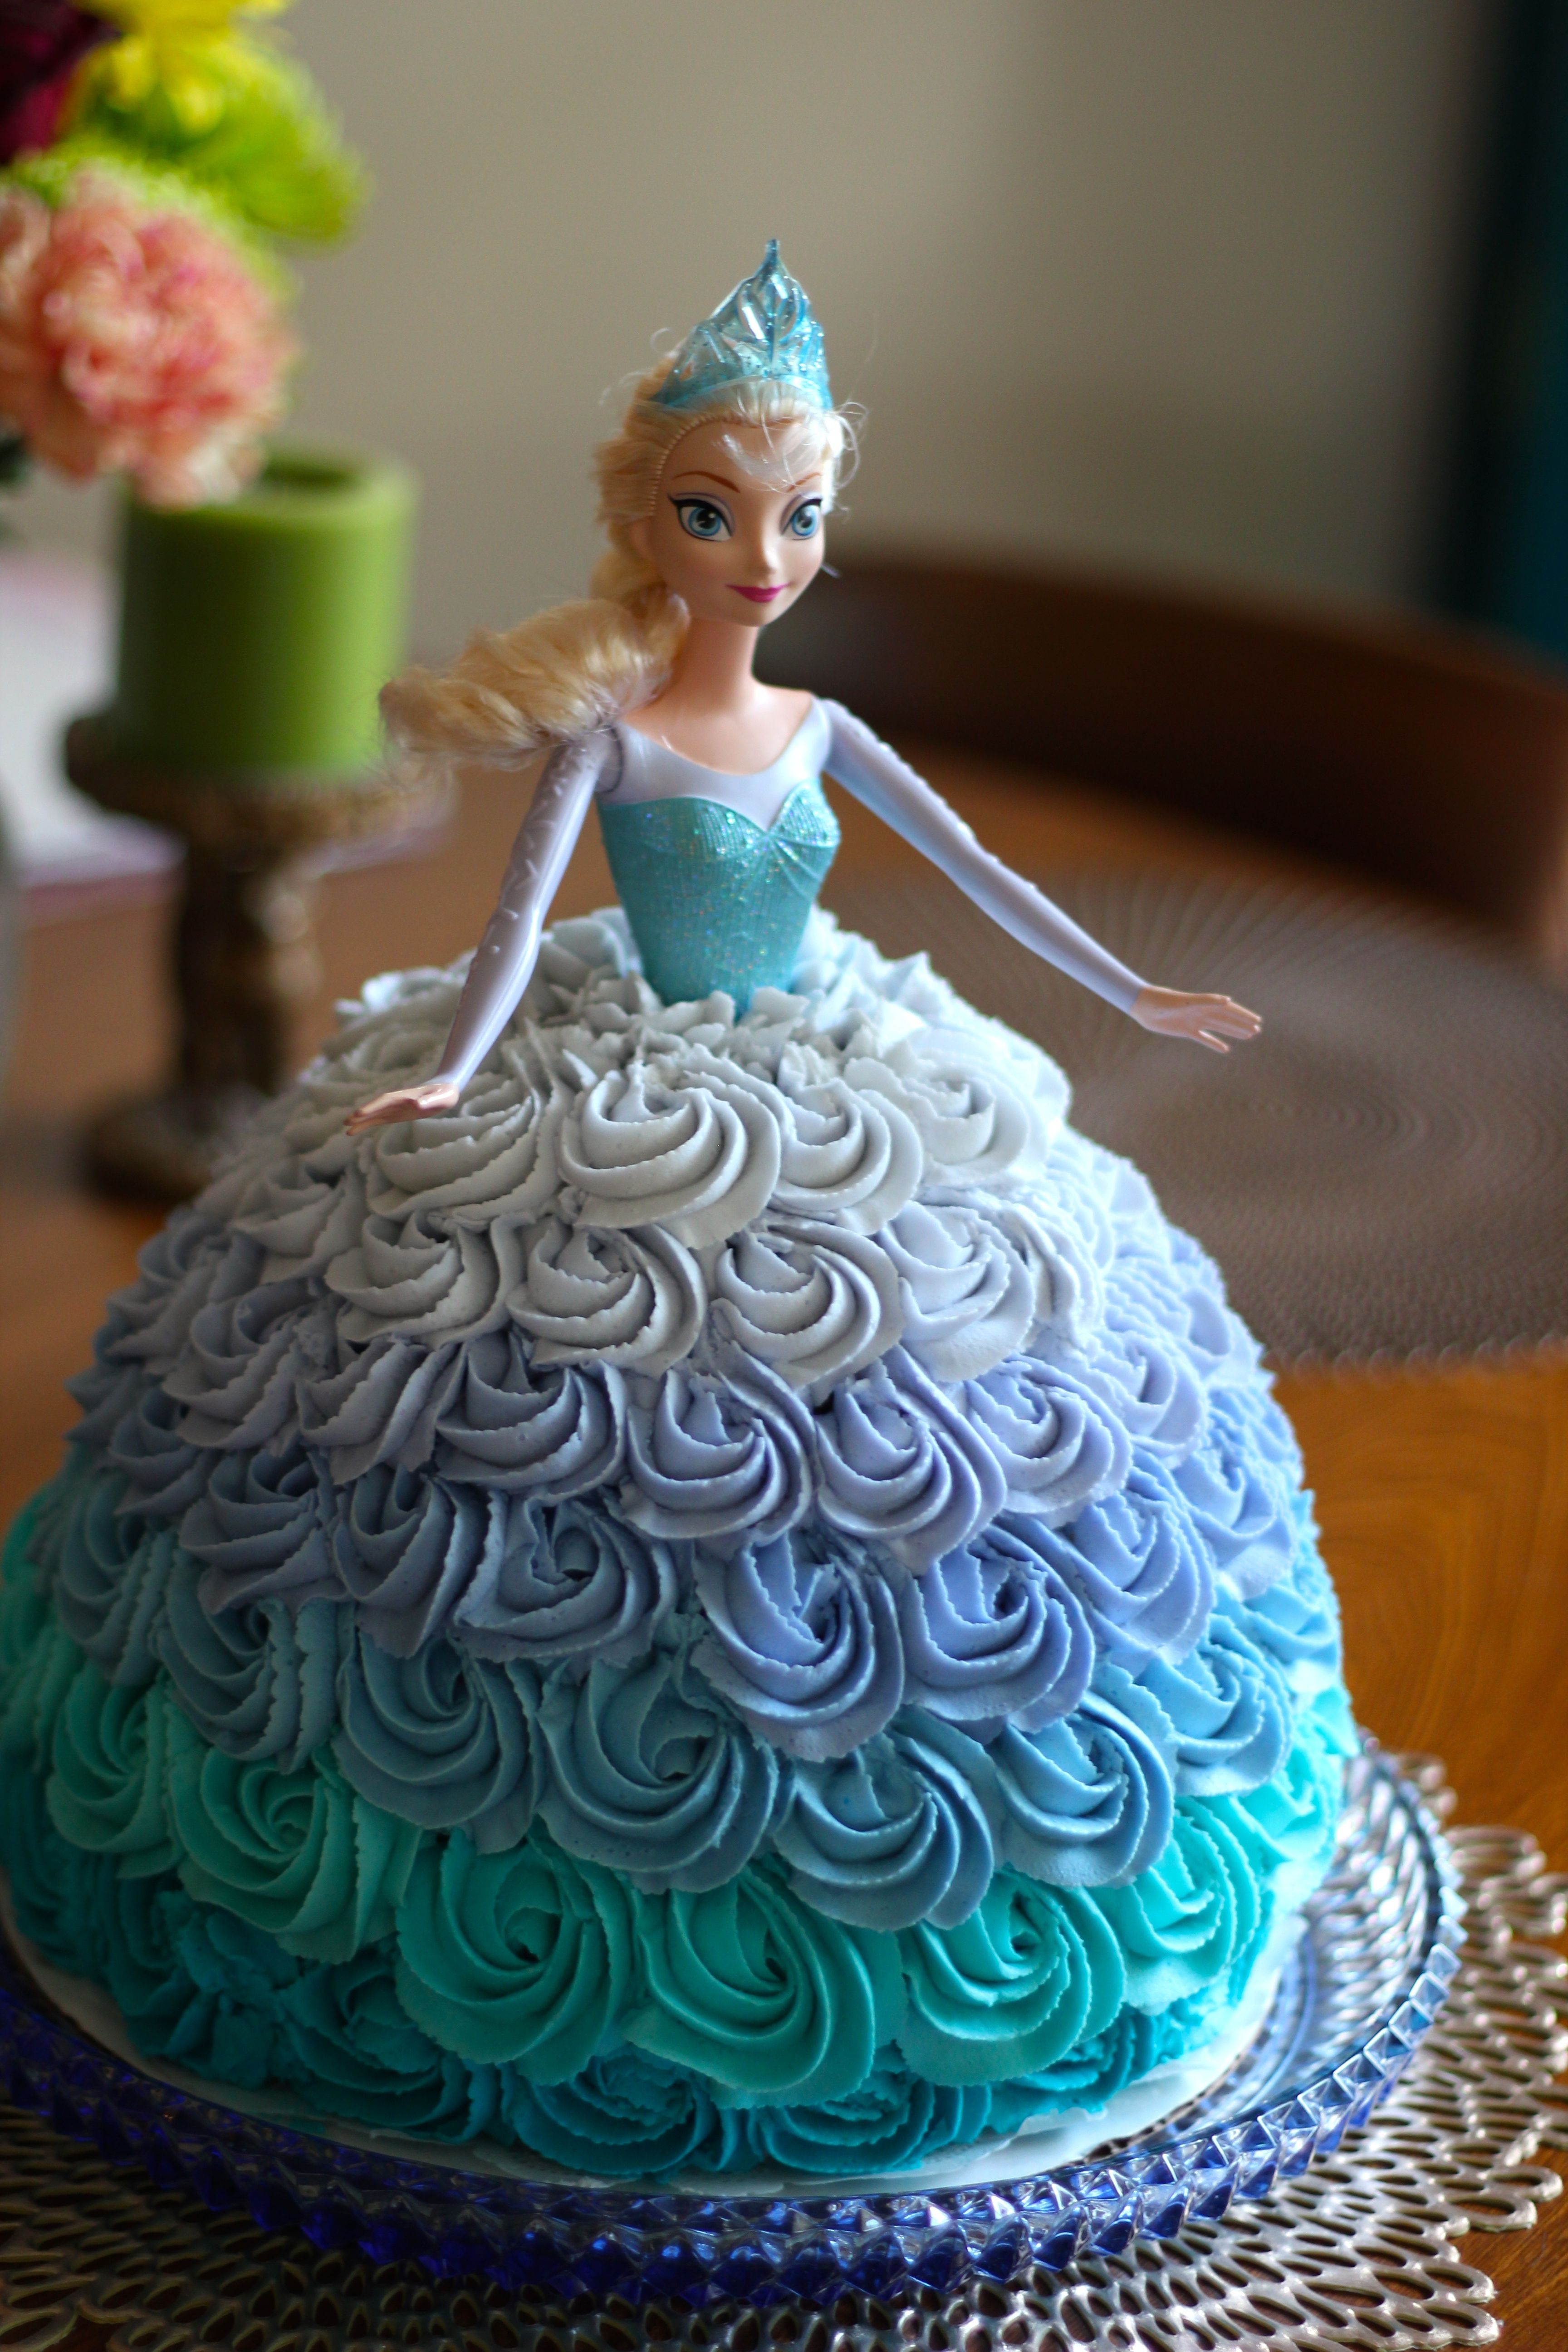 Elsa Birthday Cakes Disneys Frozen Elsa Doll Cake Made With An Ombre Rosette Skirt For